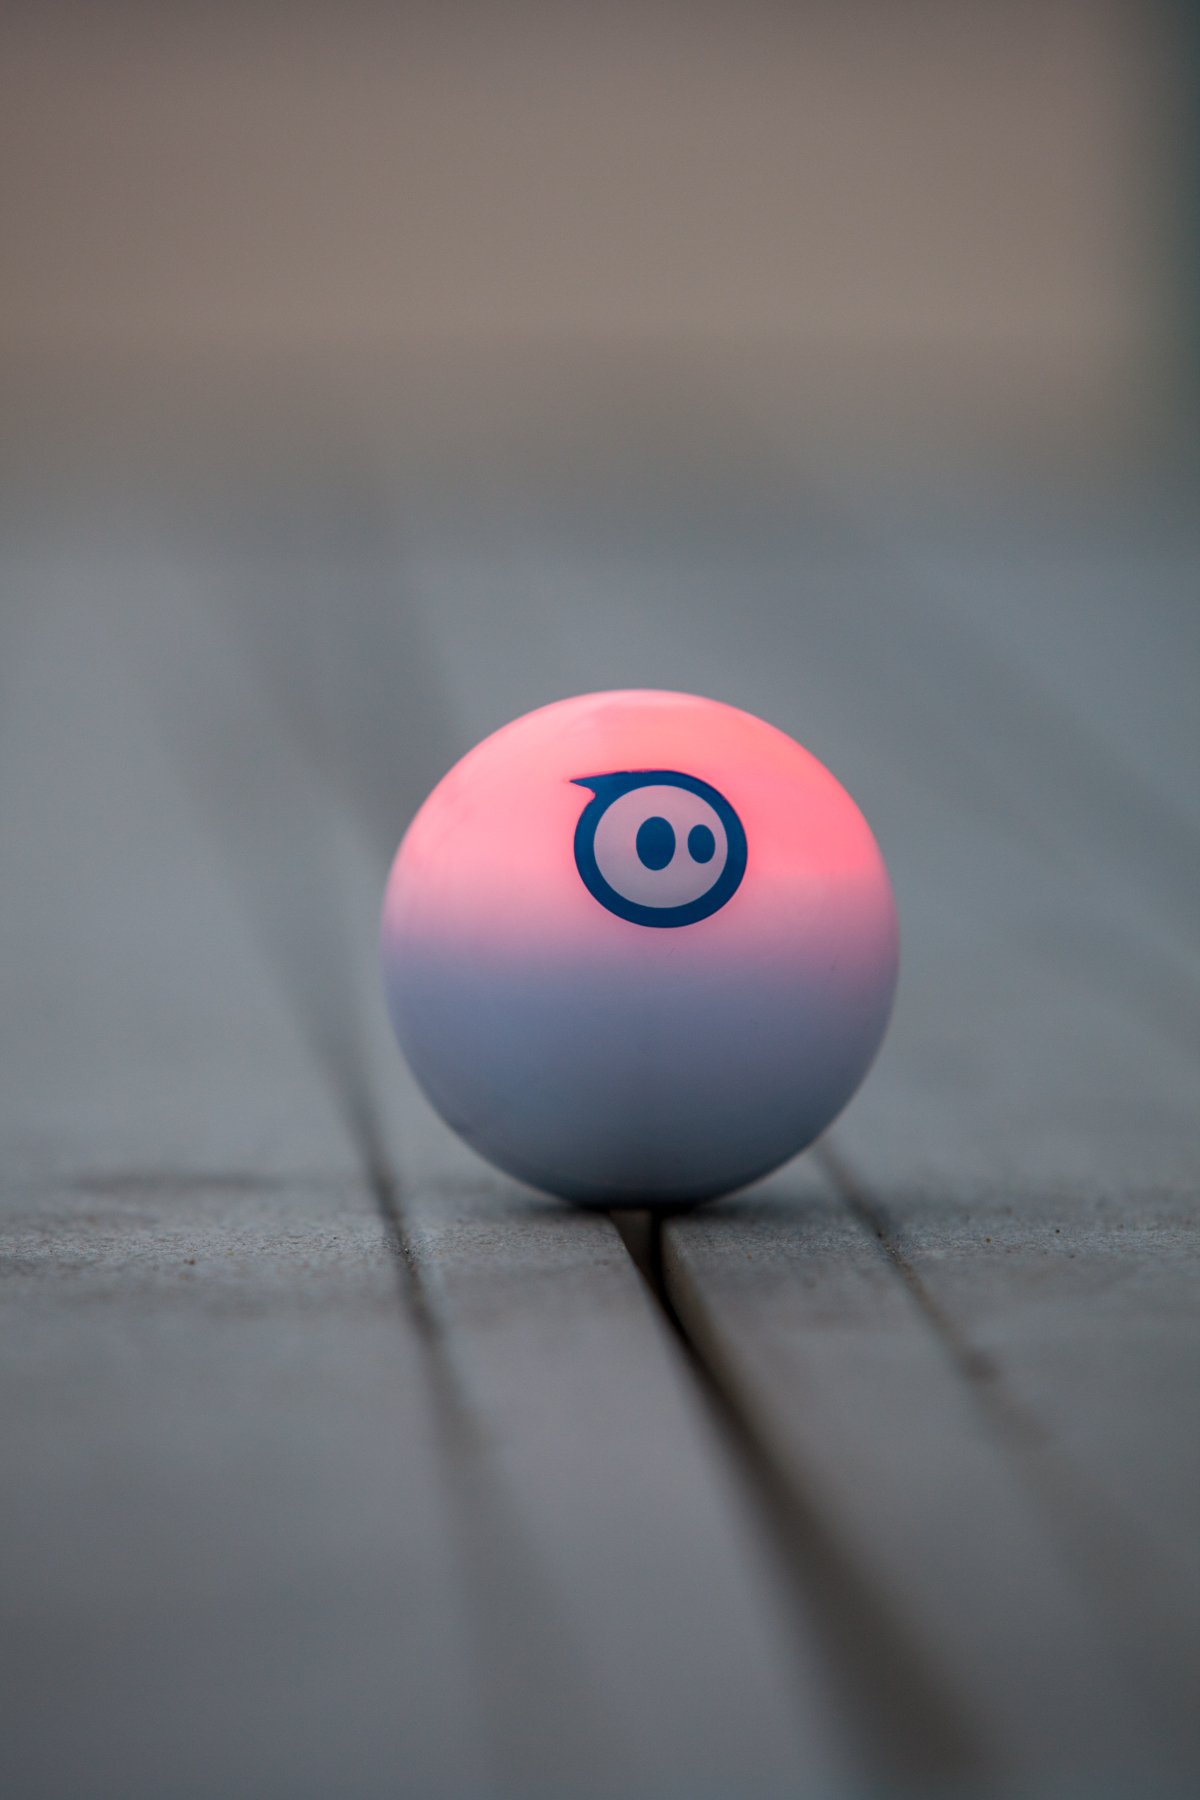 Sphero iOS and Android App Controlled Robotic Ball - Retail Packaging - White (Discontinued by Manufacturer) by Sphero (Image #8)